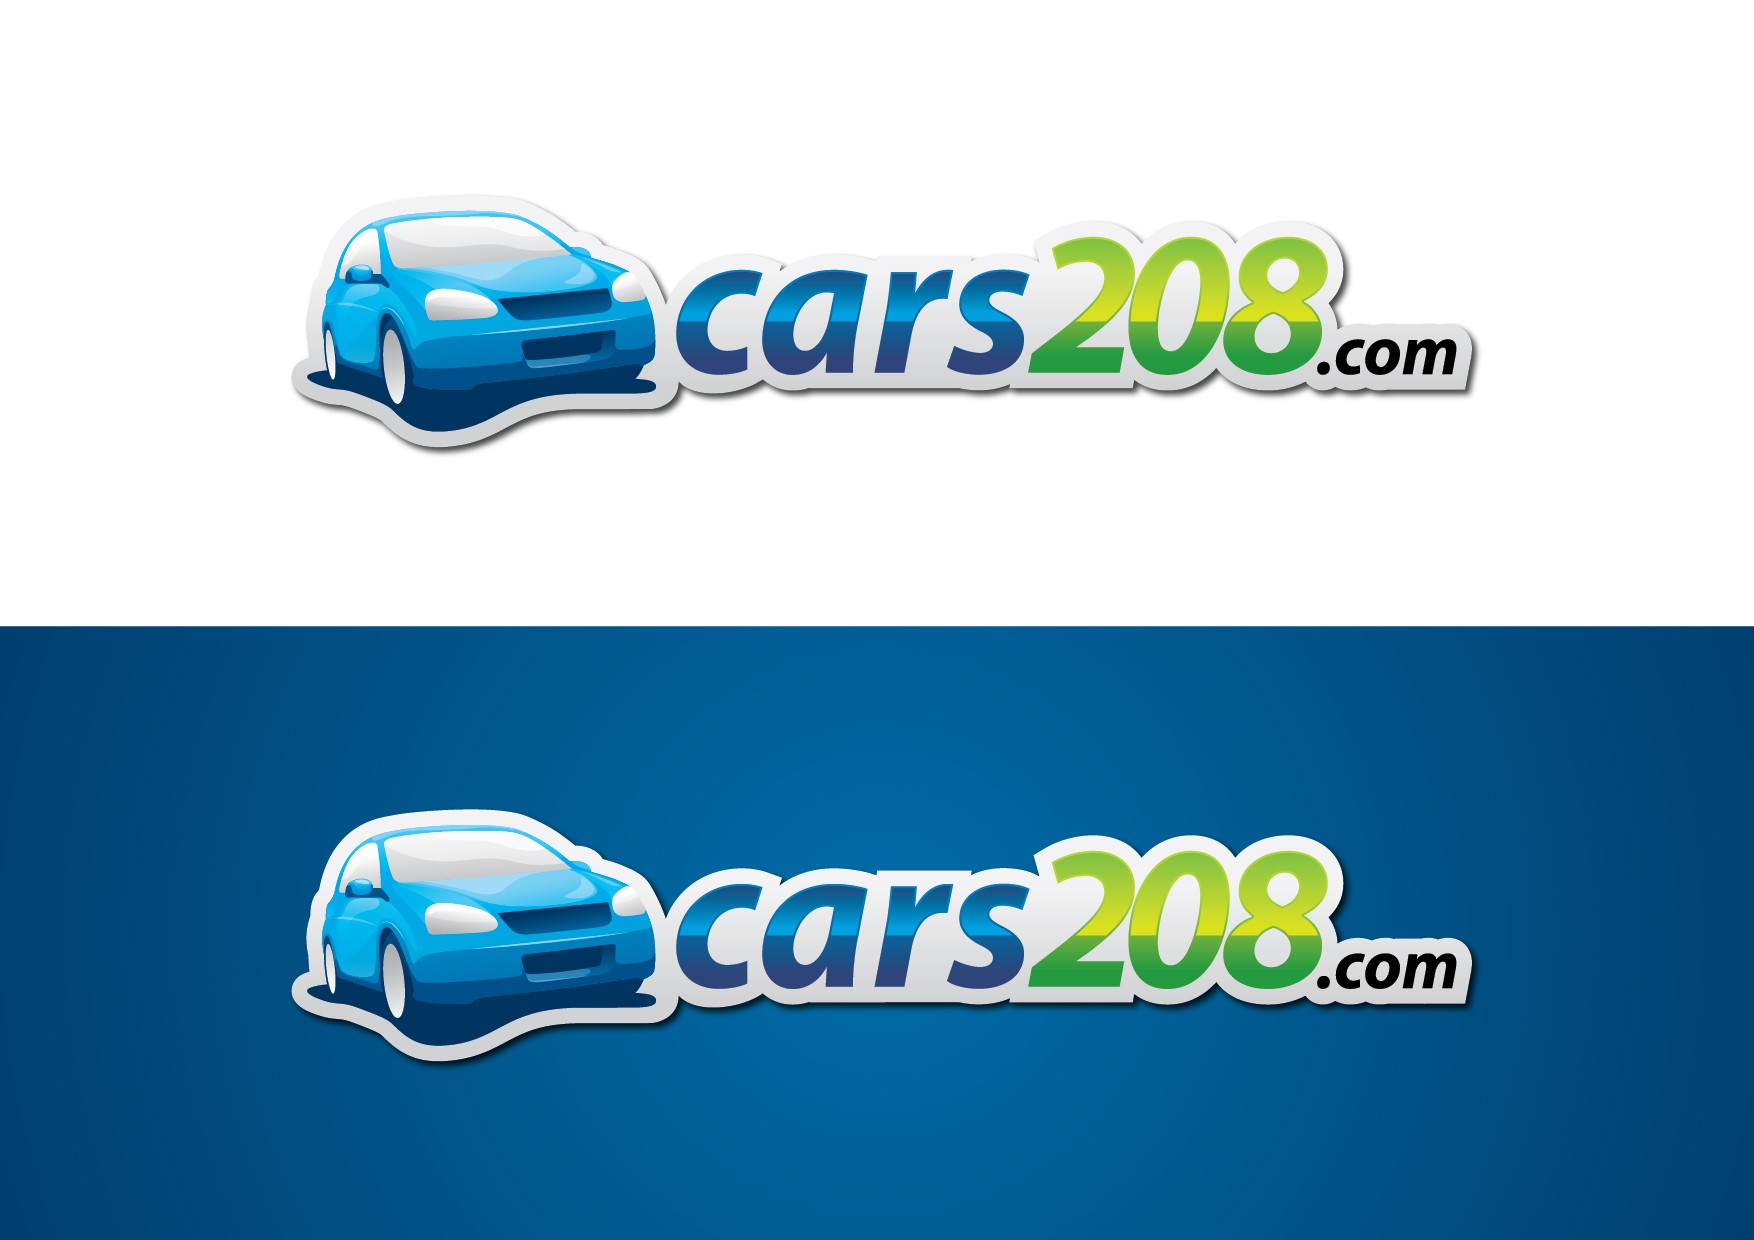 New logo wanted for cars208.com